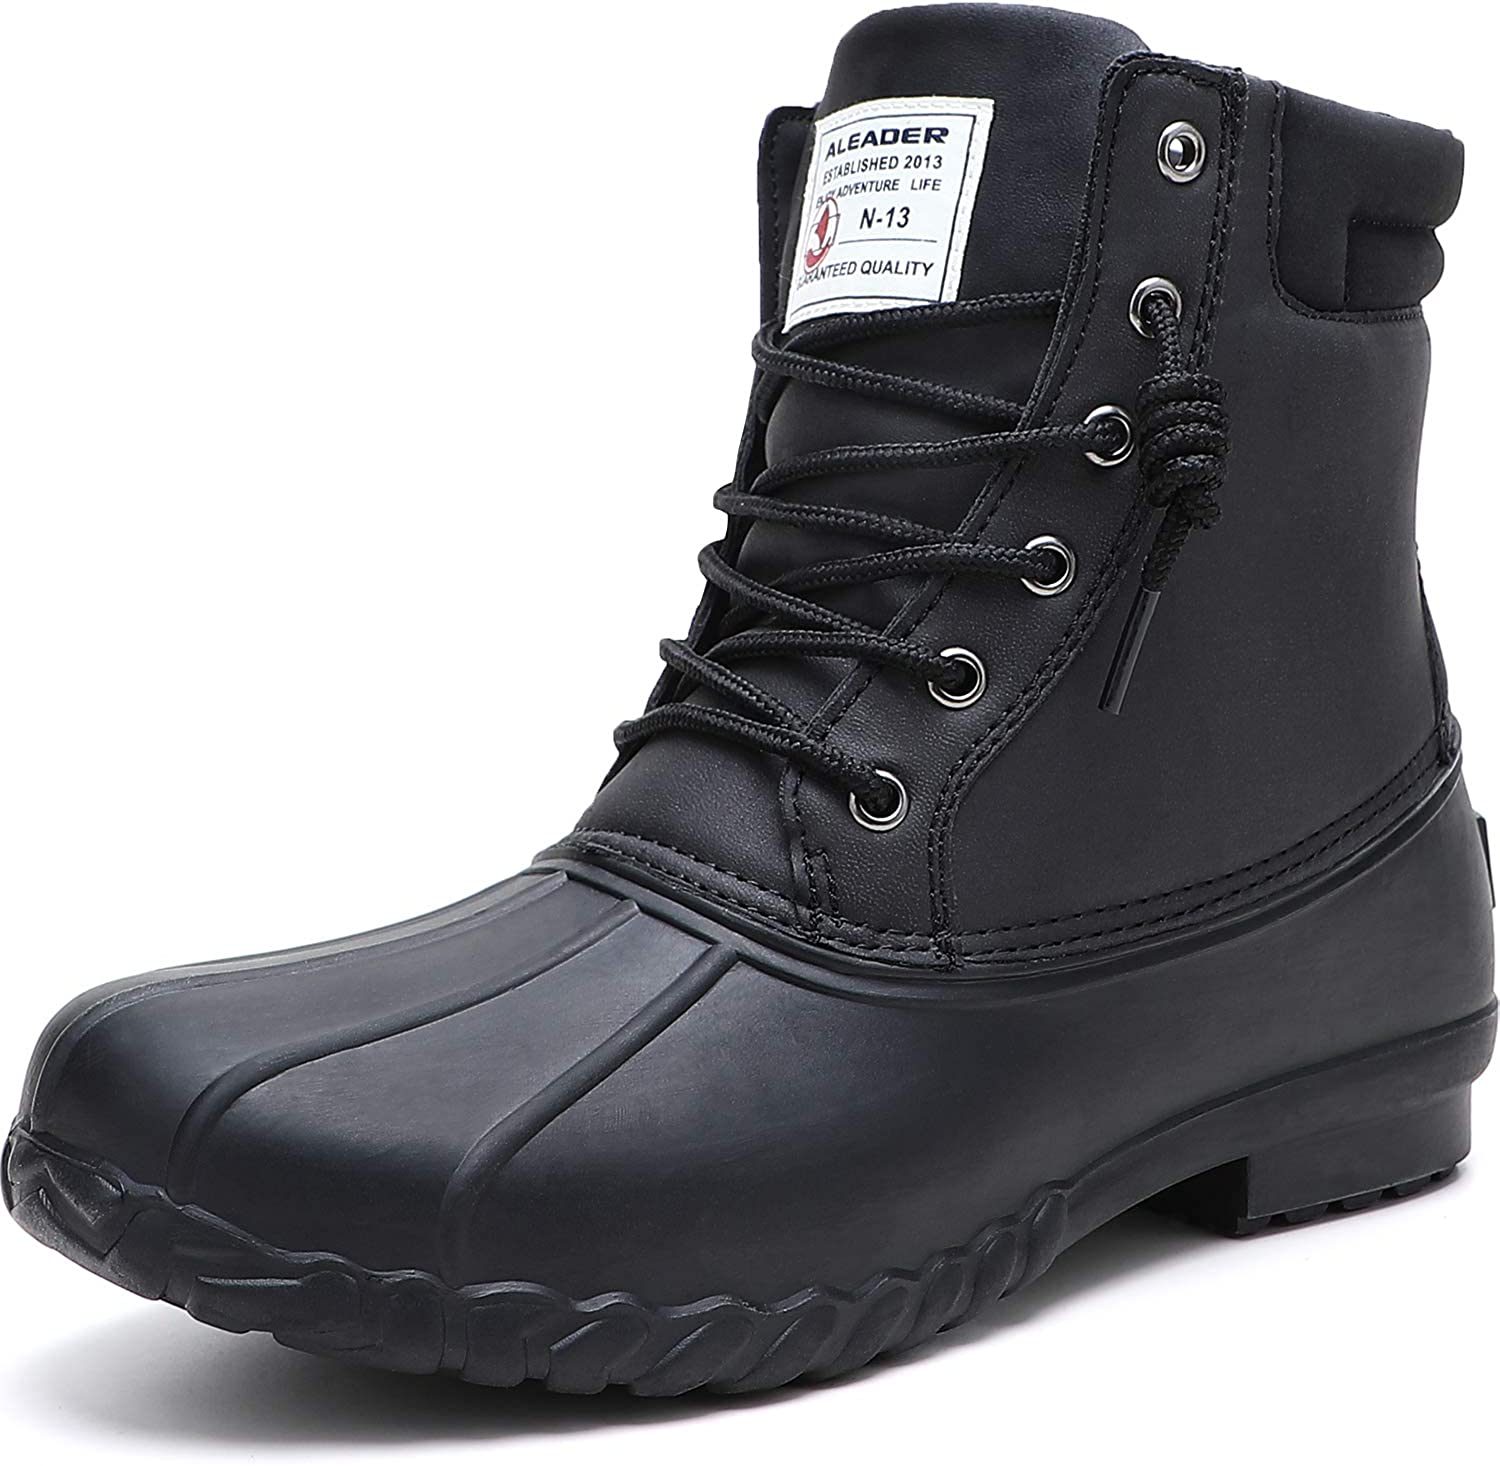 ALEADER Mens Duck Boot online shop Save money Waterproof Fur Shell Lined Insulated